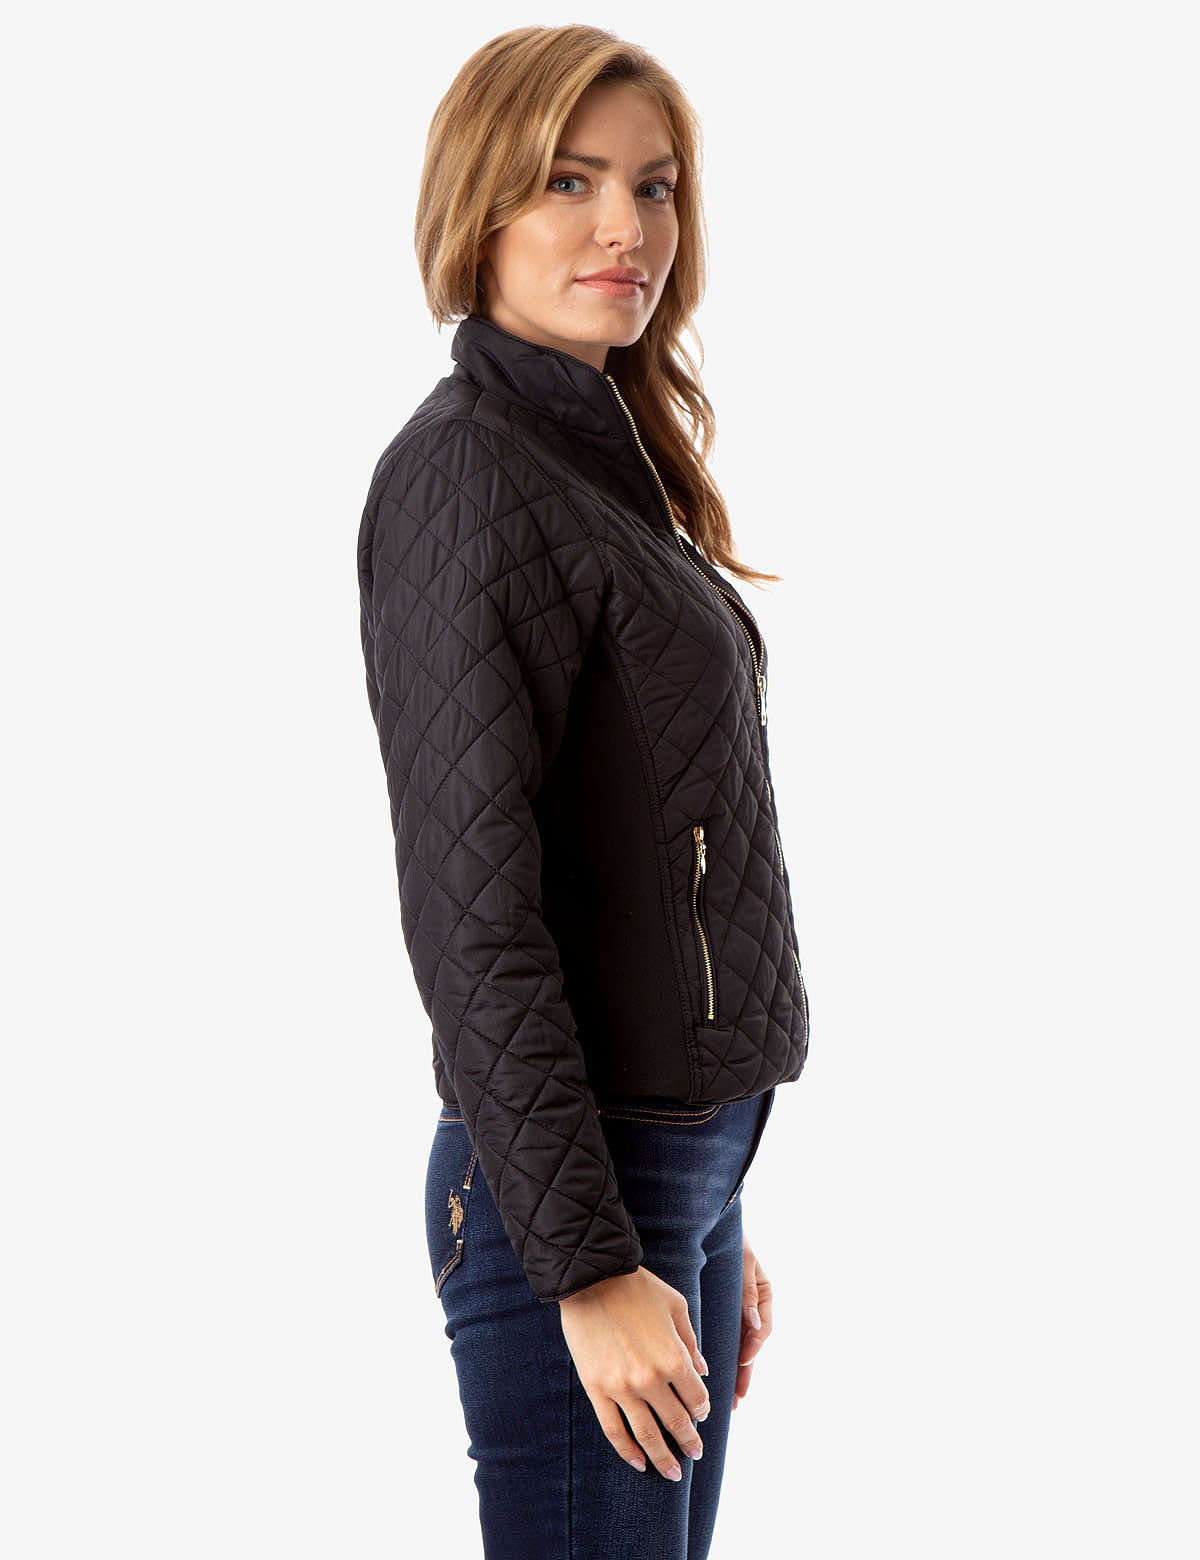 SIDE KNIT QUILTED JACKET - U.S. Polo Assn.